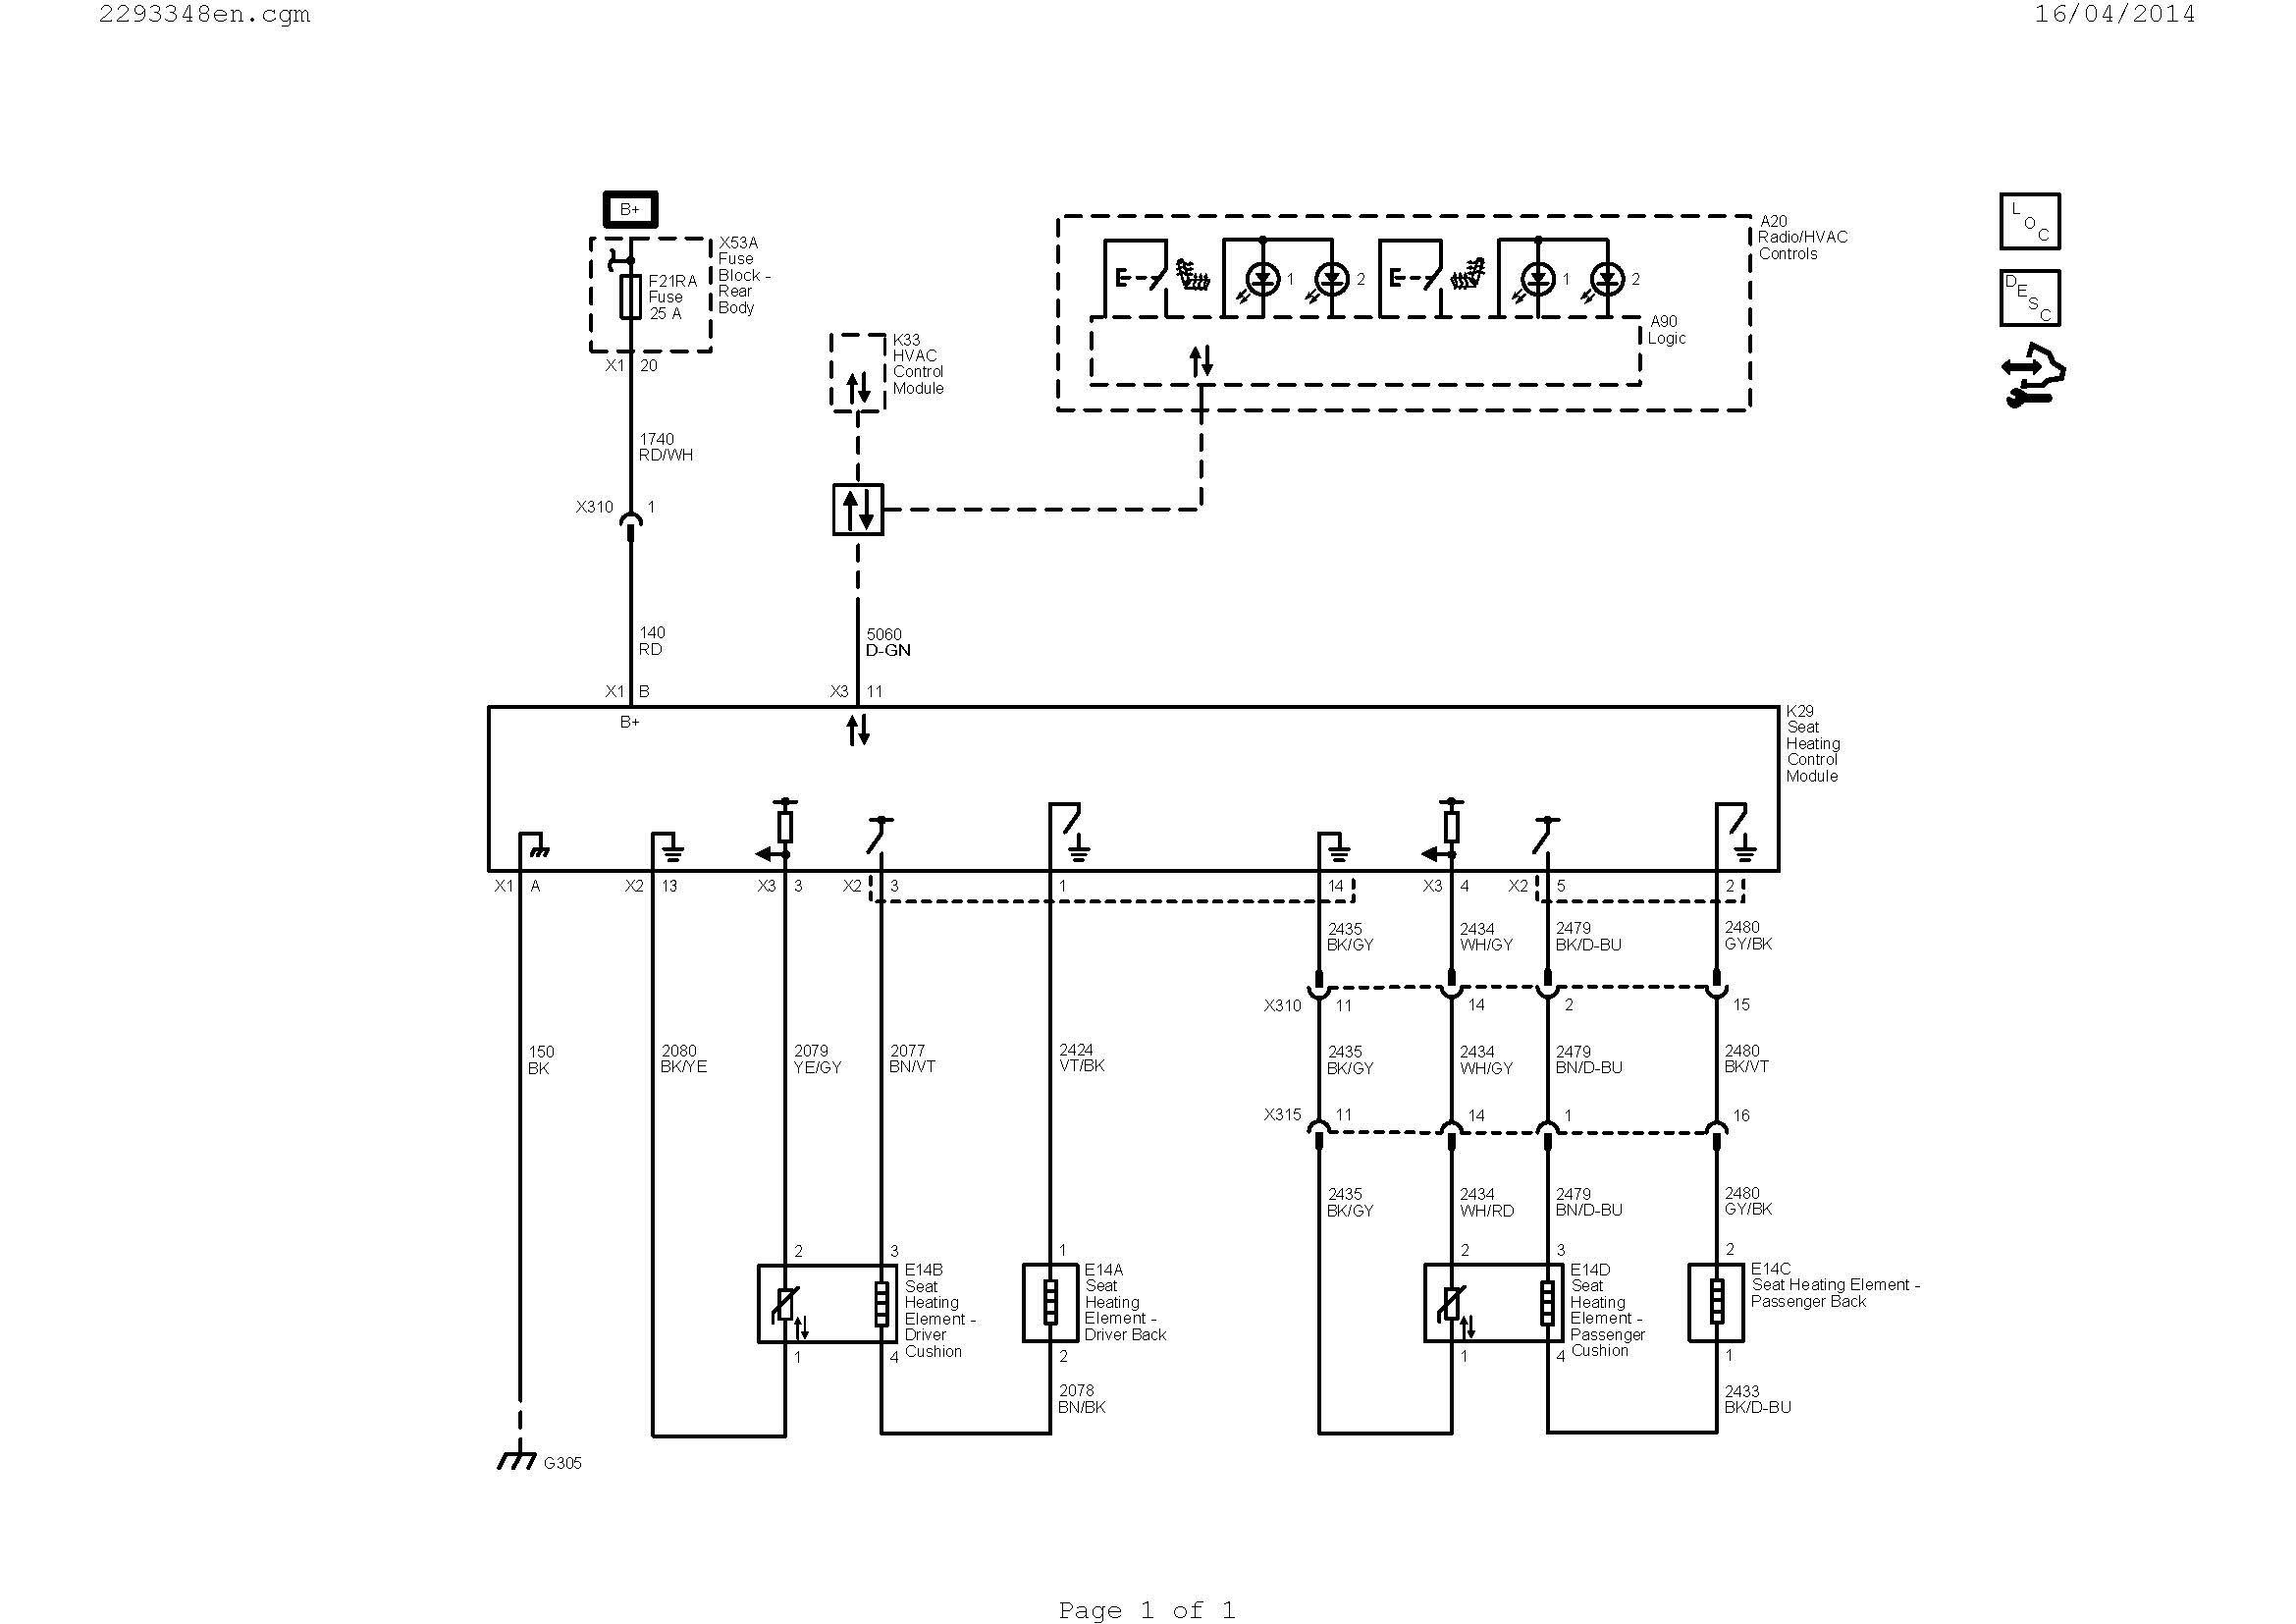 furnace transformer wiring diagram Collection-Hvac Transformer Wiring Diagram Wiring A Ac thermostat Diagram New Wiring Diagram Ac Valid Hvac 12-e